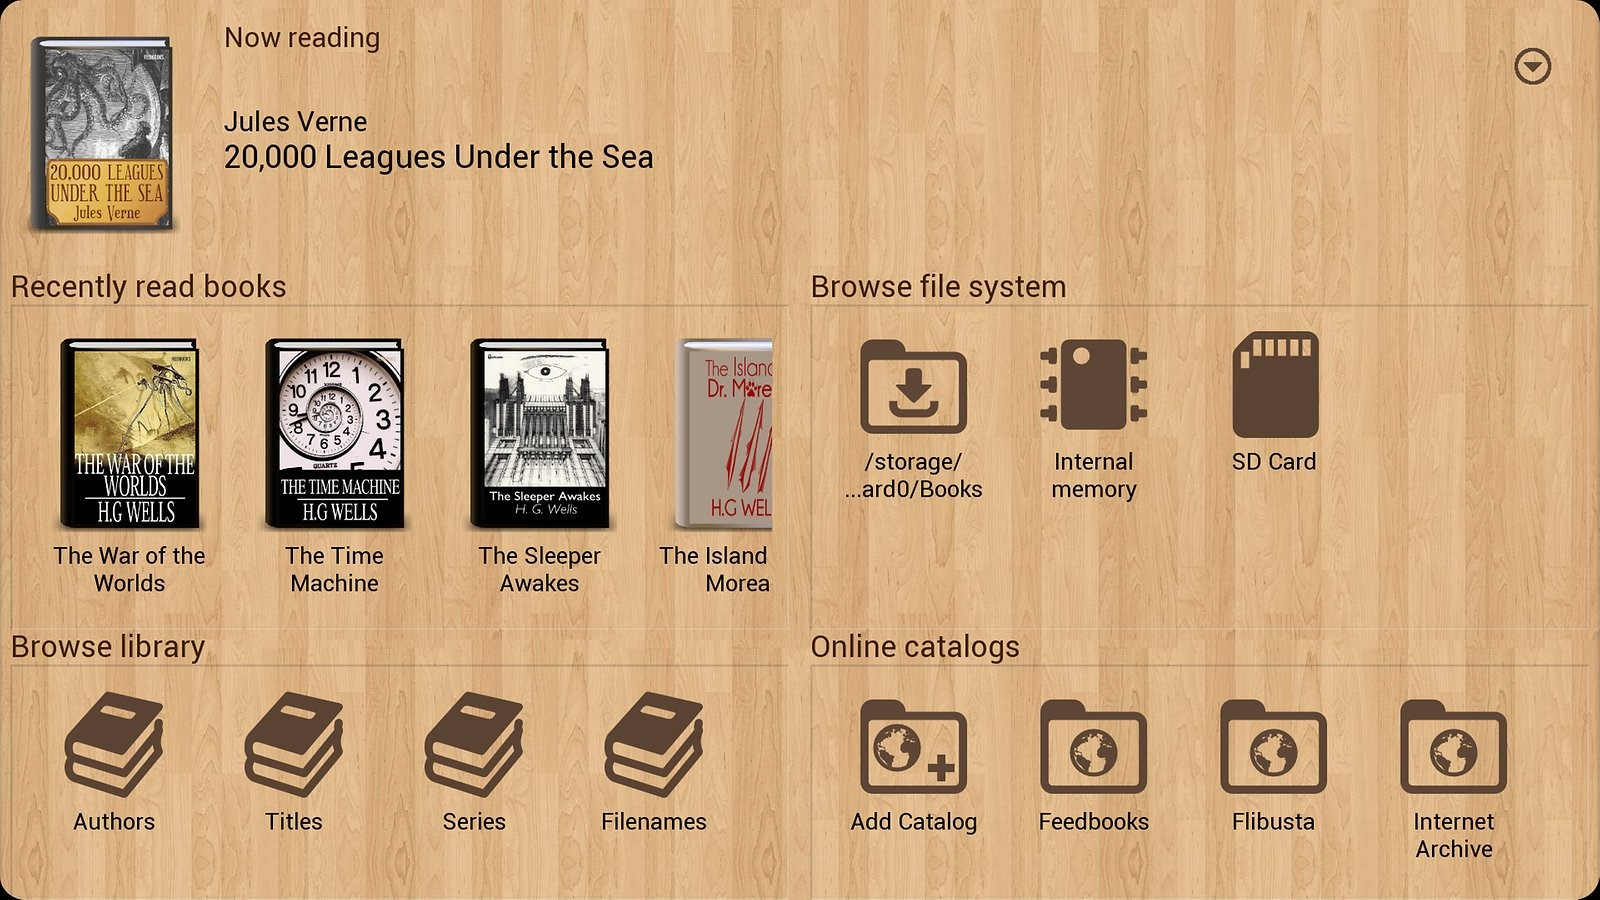 is it possible to export epub as pdf